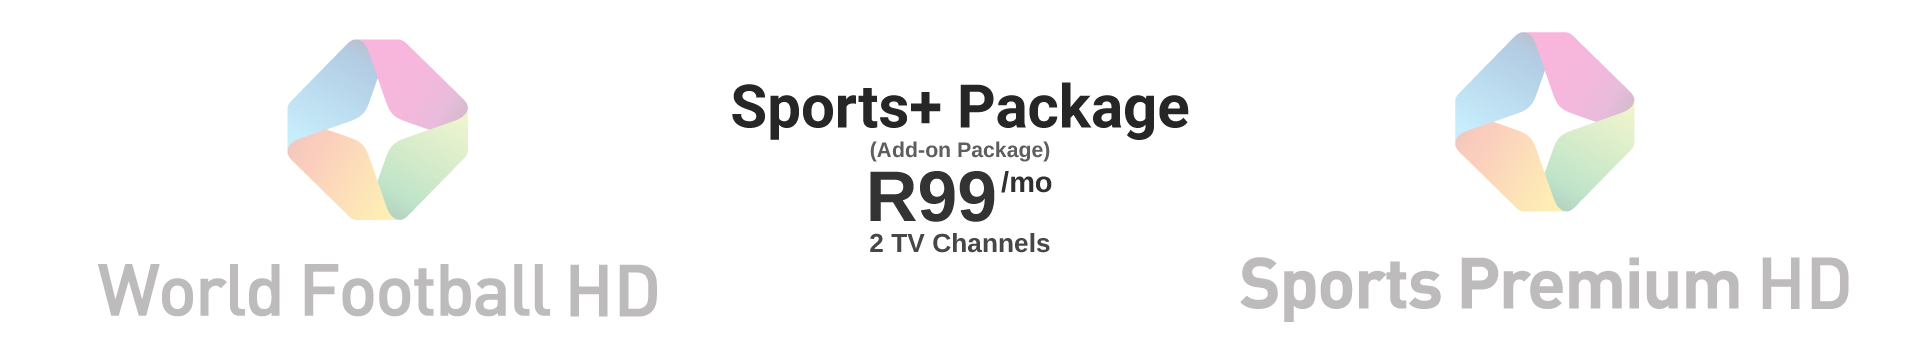 Sports+ Package: R99/mo